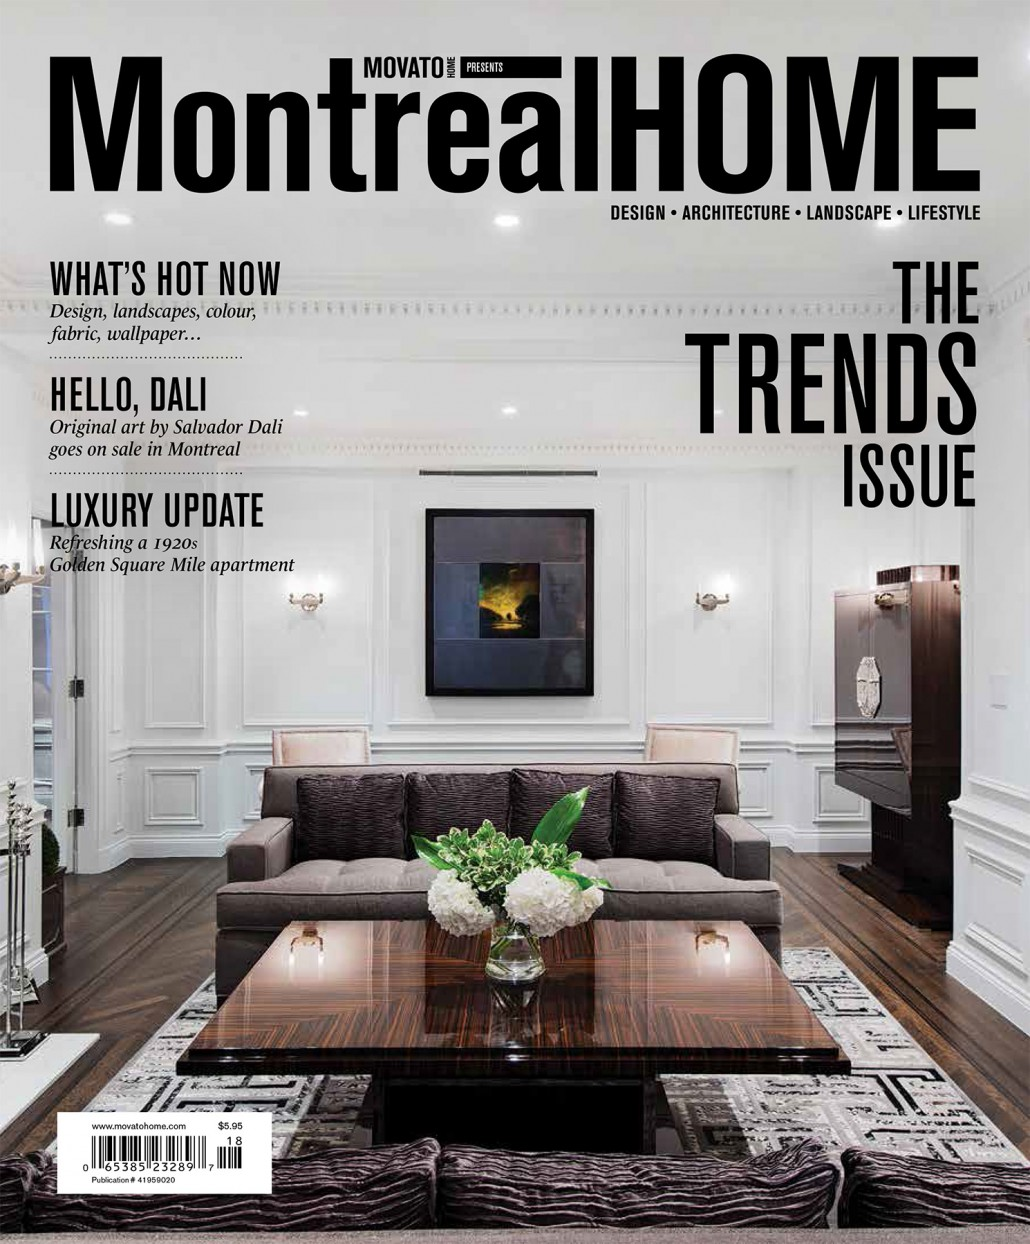 Just Off the Press: Montreal Home Trends Issue 2014